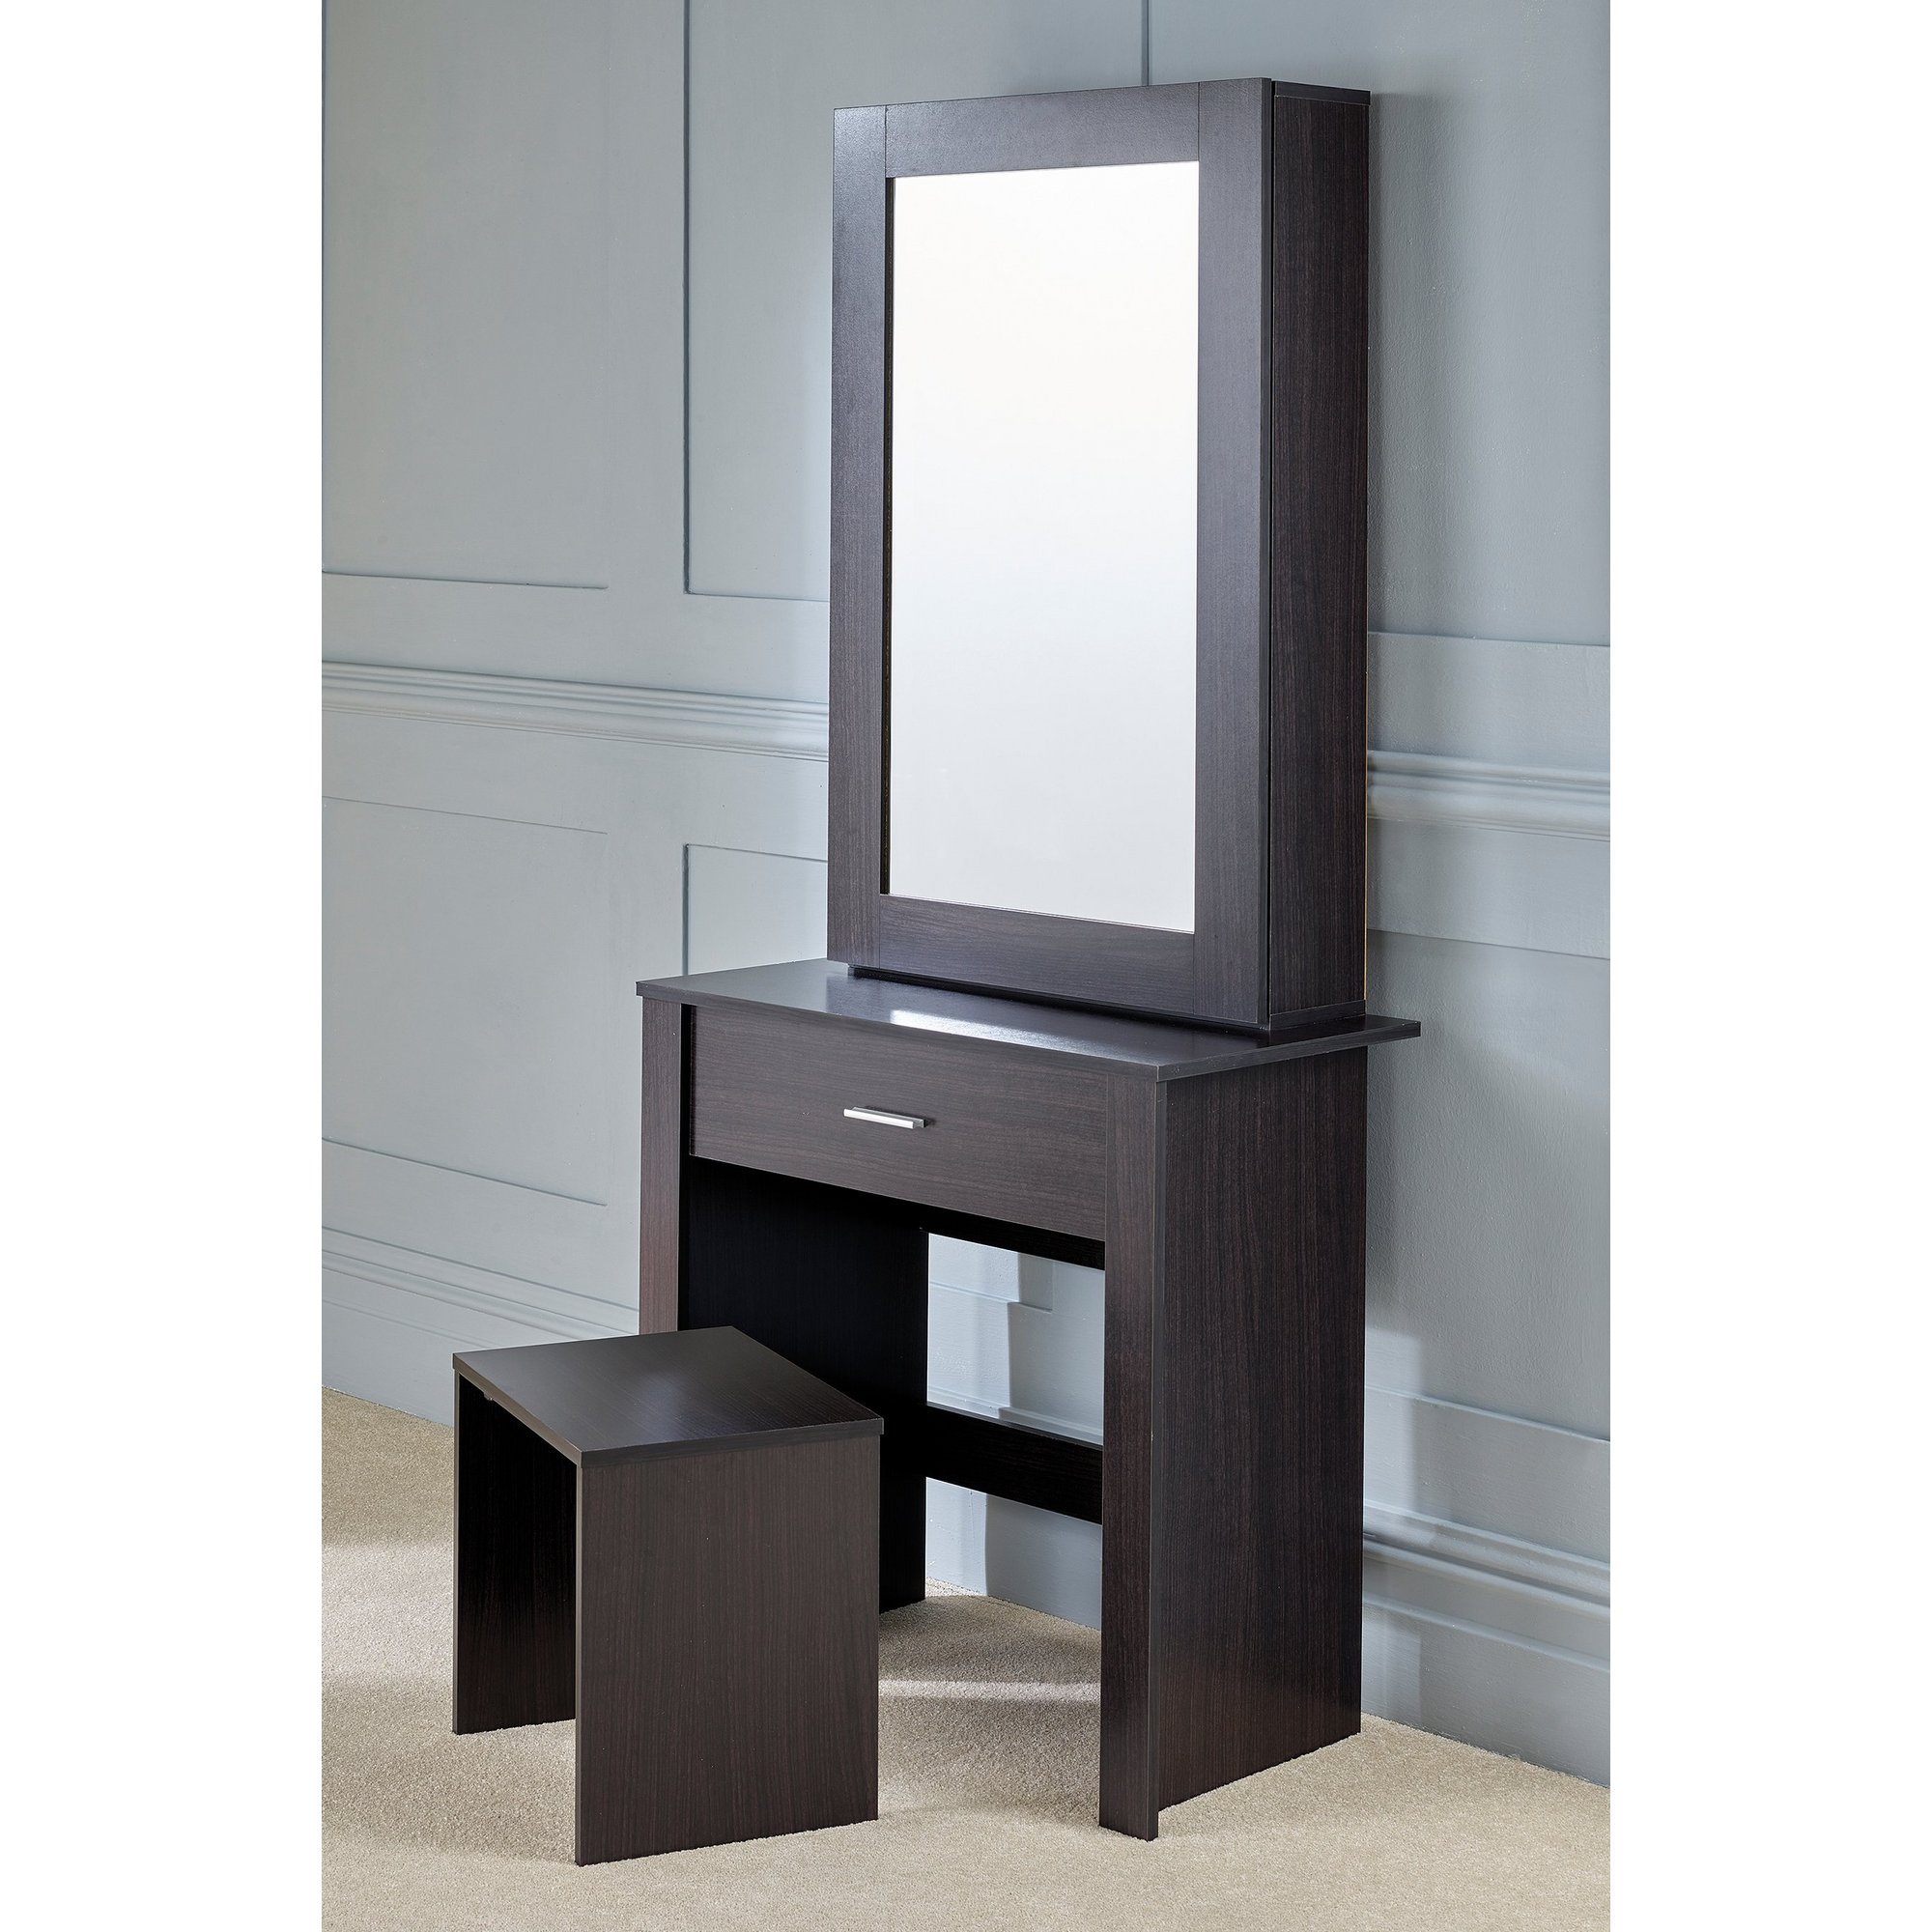 Image of Hobson Mirrored Unit and Stool